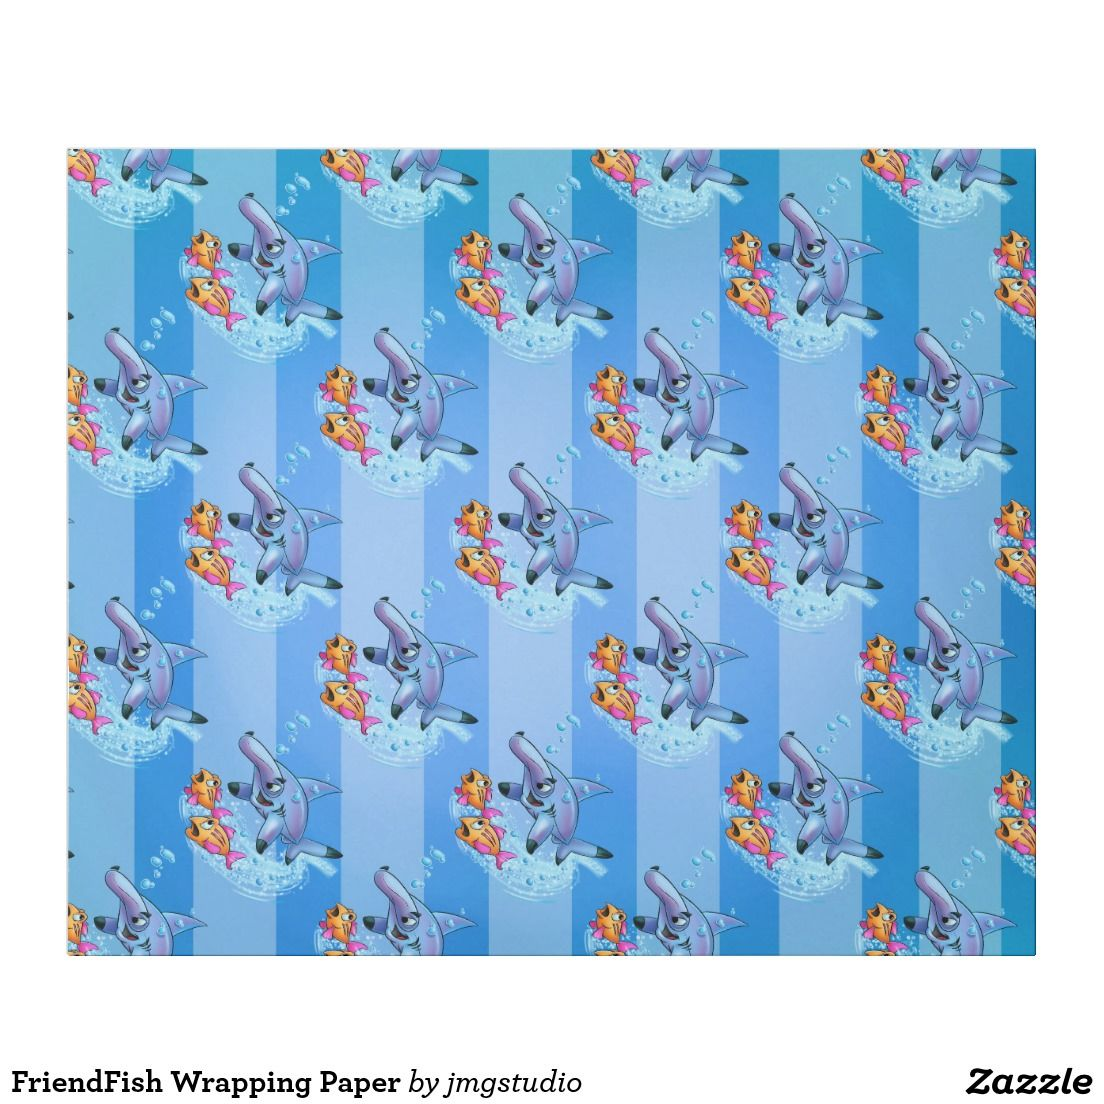 FriendFish Wrapping Paper